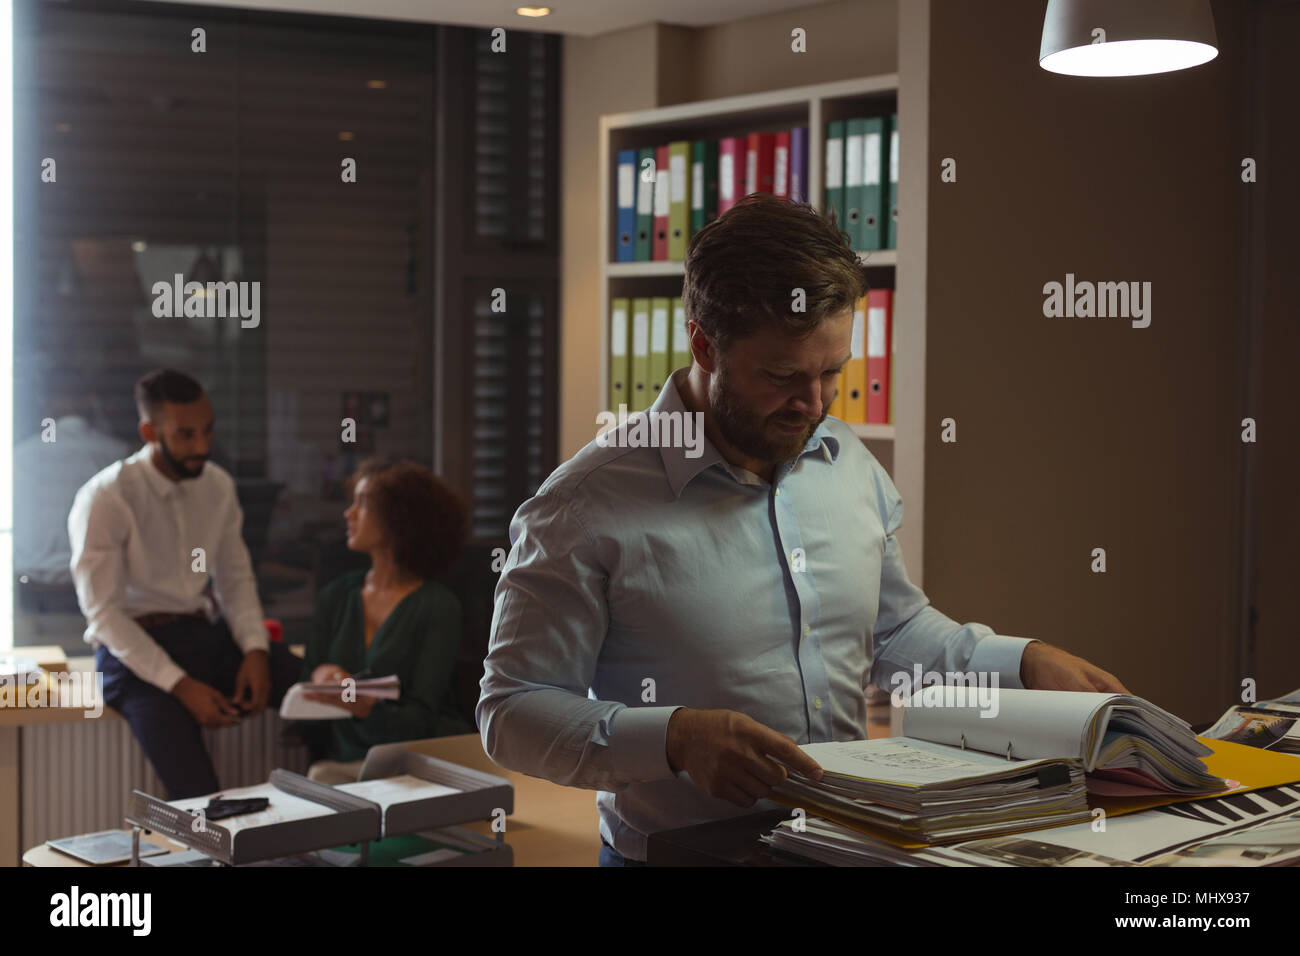 Architect checking file while colleagues interacting in background - Stock Image